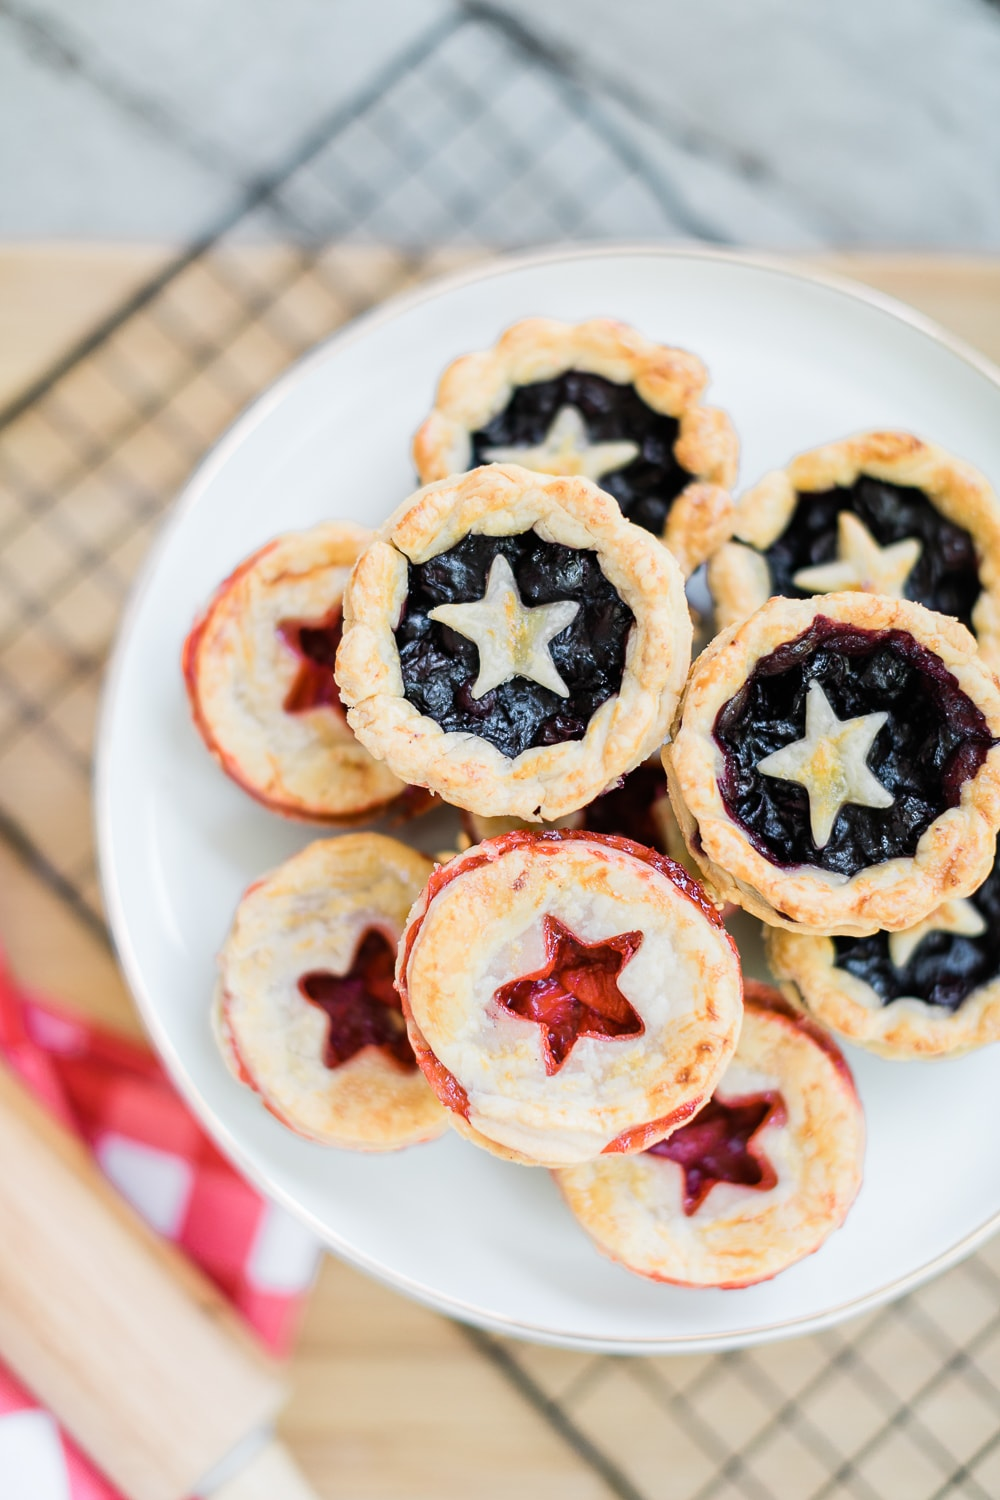 Patriotic mini strawberry and blueberry pies by blogger Stephanie Ziajka on Diary of a Debutante